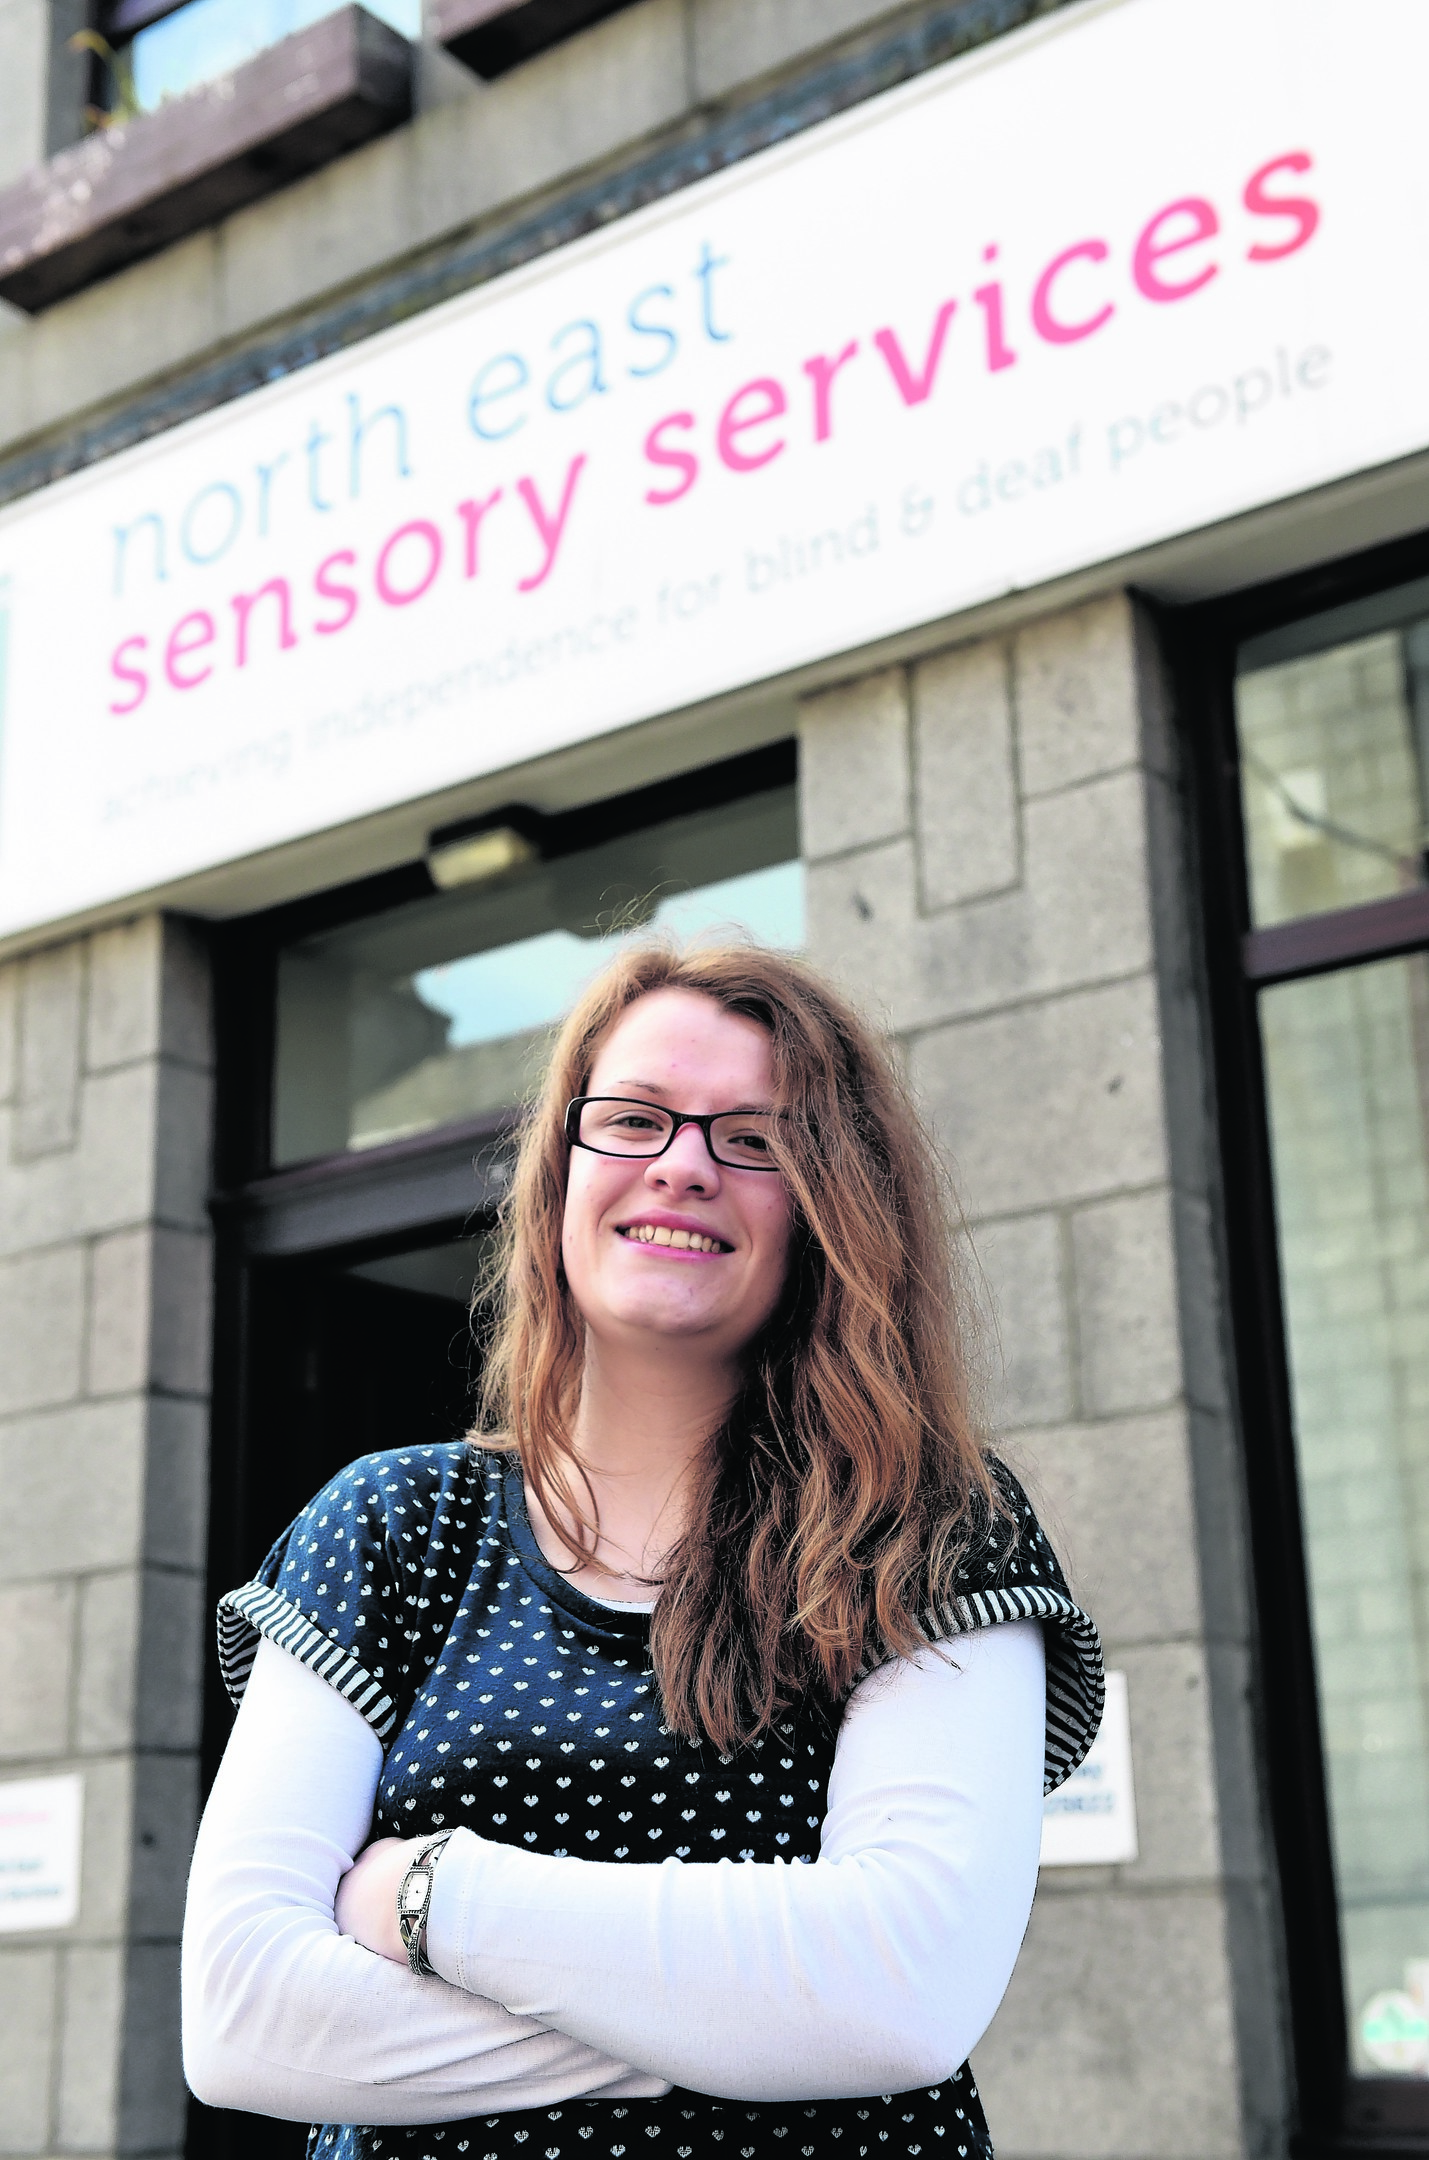 Leona Glennie, who works at North East Sensory Services.